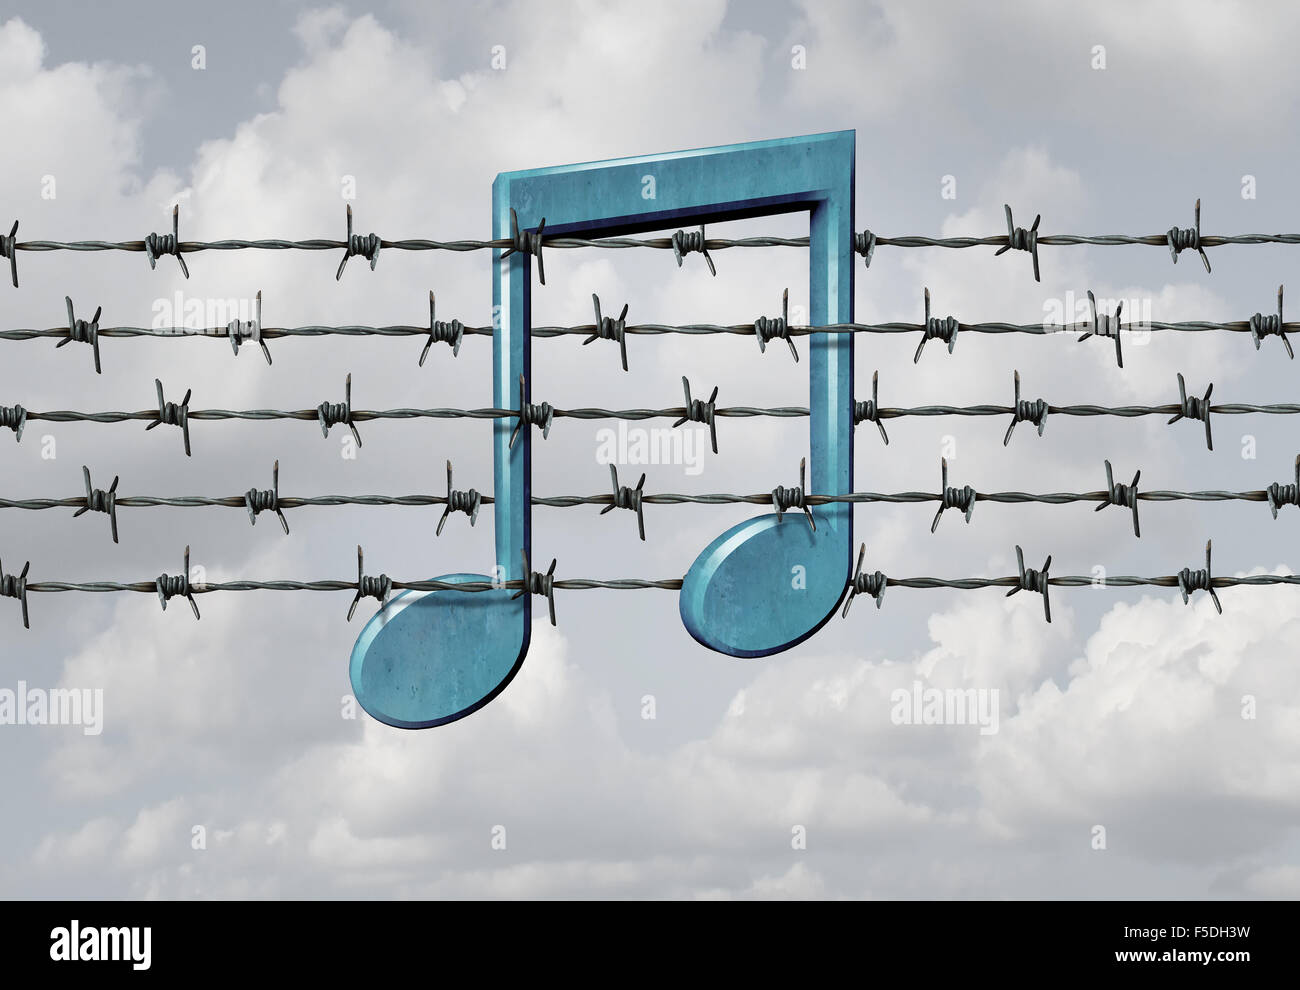 Media censorship concept and music restriction symbol as a musical note on a barb or barbed wire fence element as Stock Photo